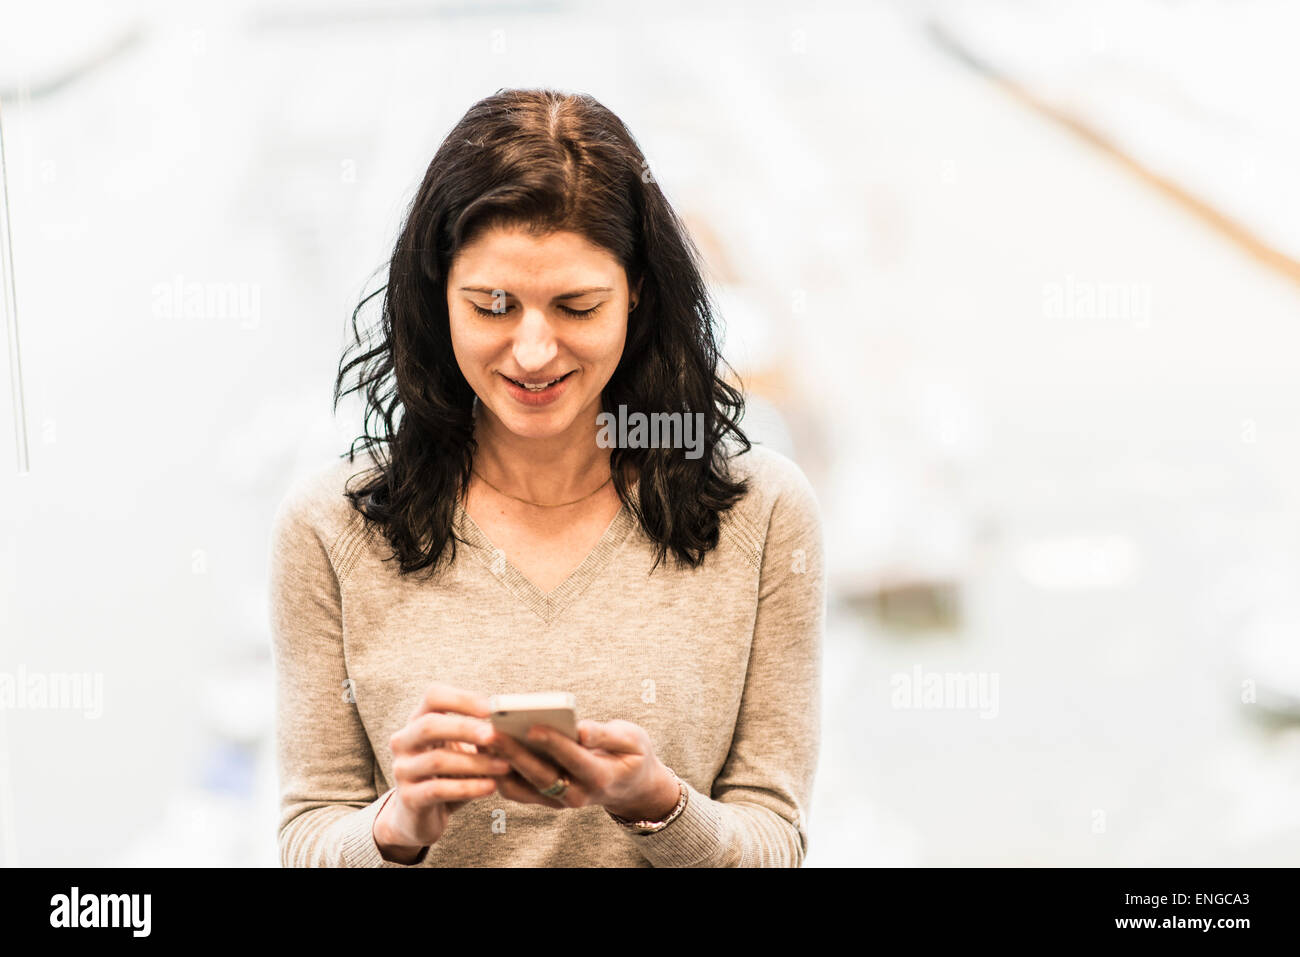 A business woman seated by a window using her smart phone. - Stock Image